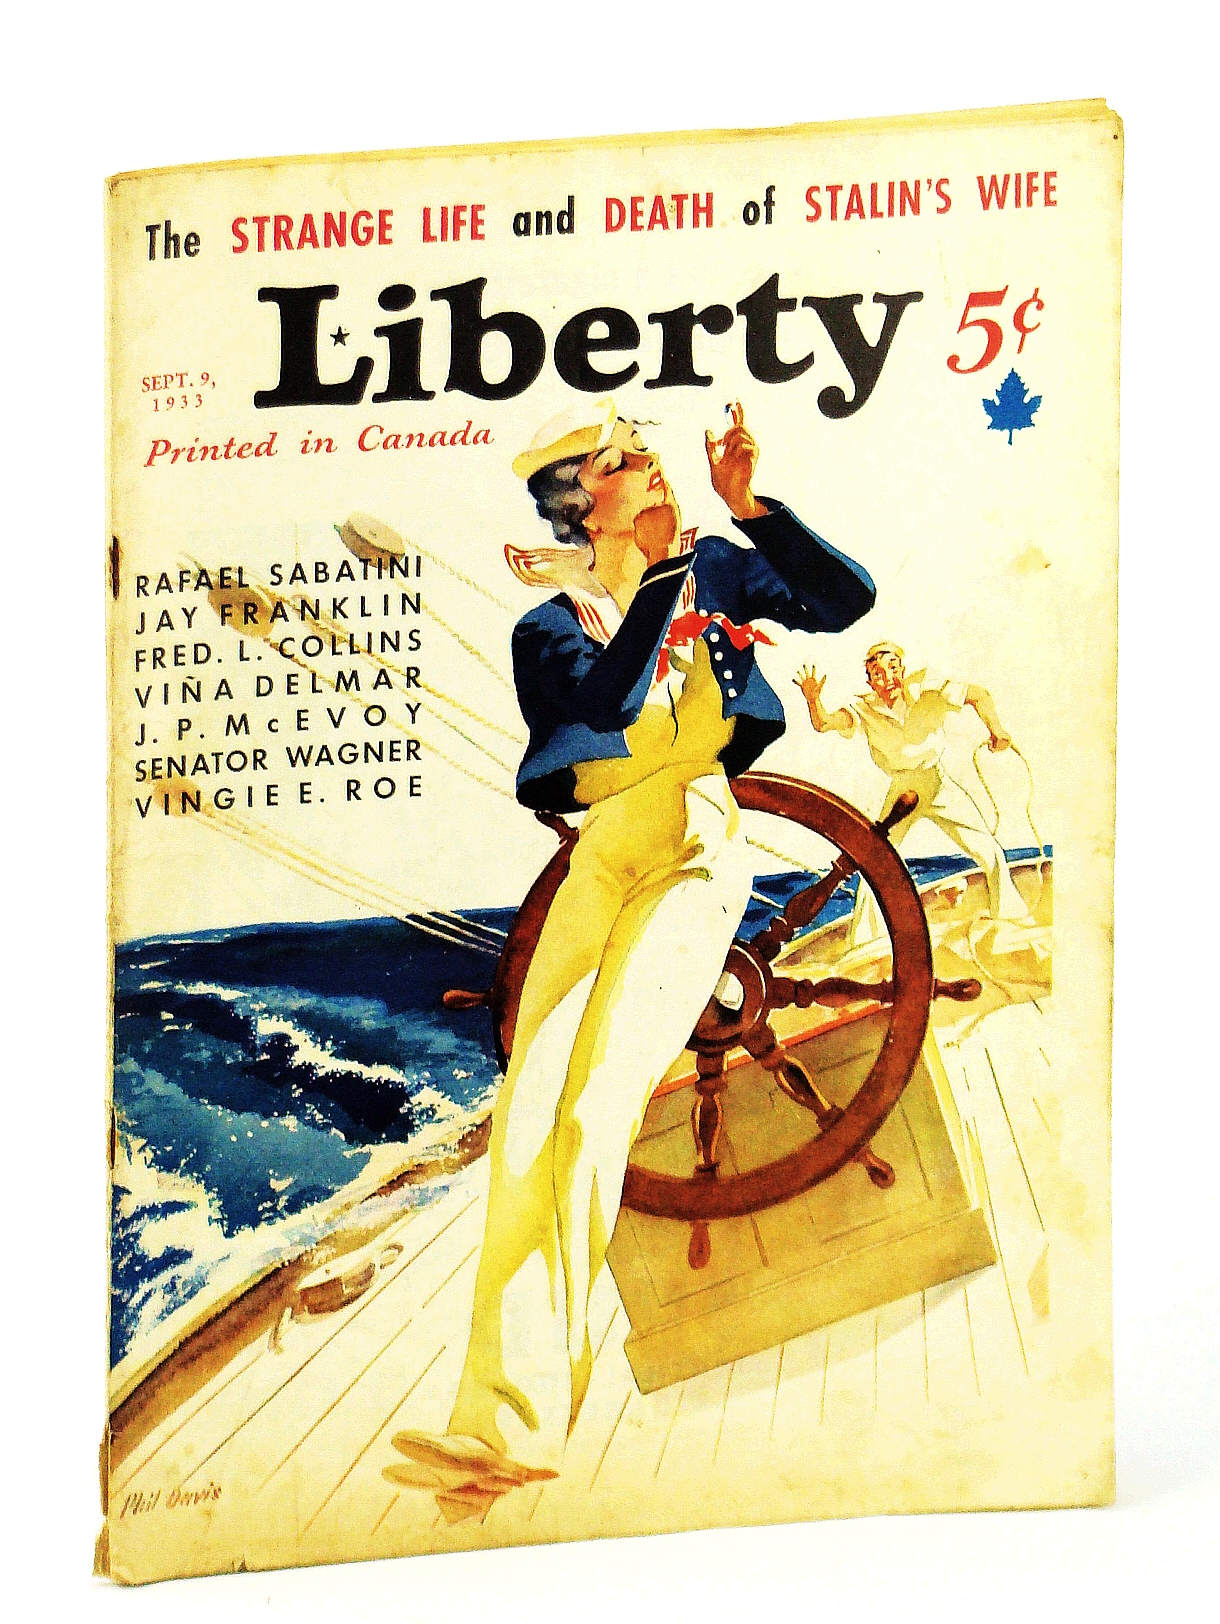 Image for Liberty Magazine, September (Sept.) 9, 1933, Vol. 10, No. 36: The Strange Life and Death of Stalin's Wife